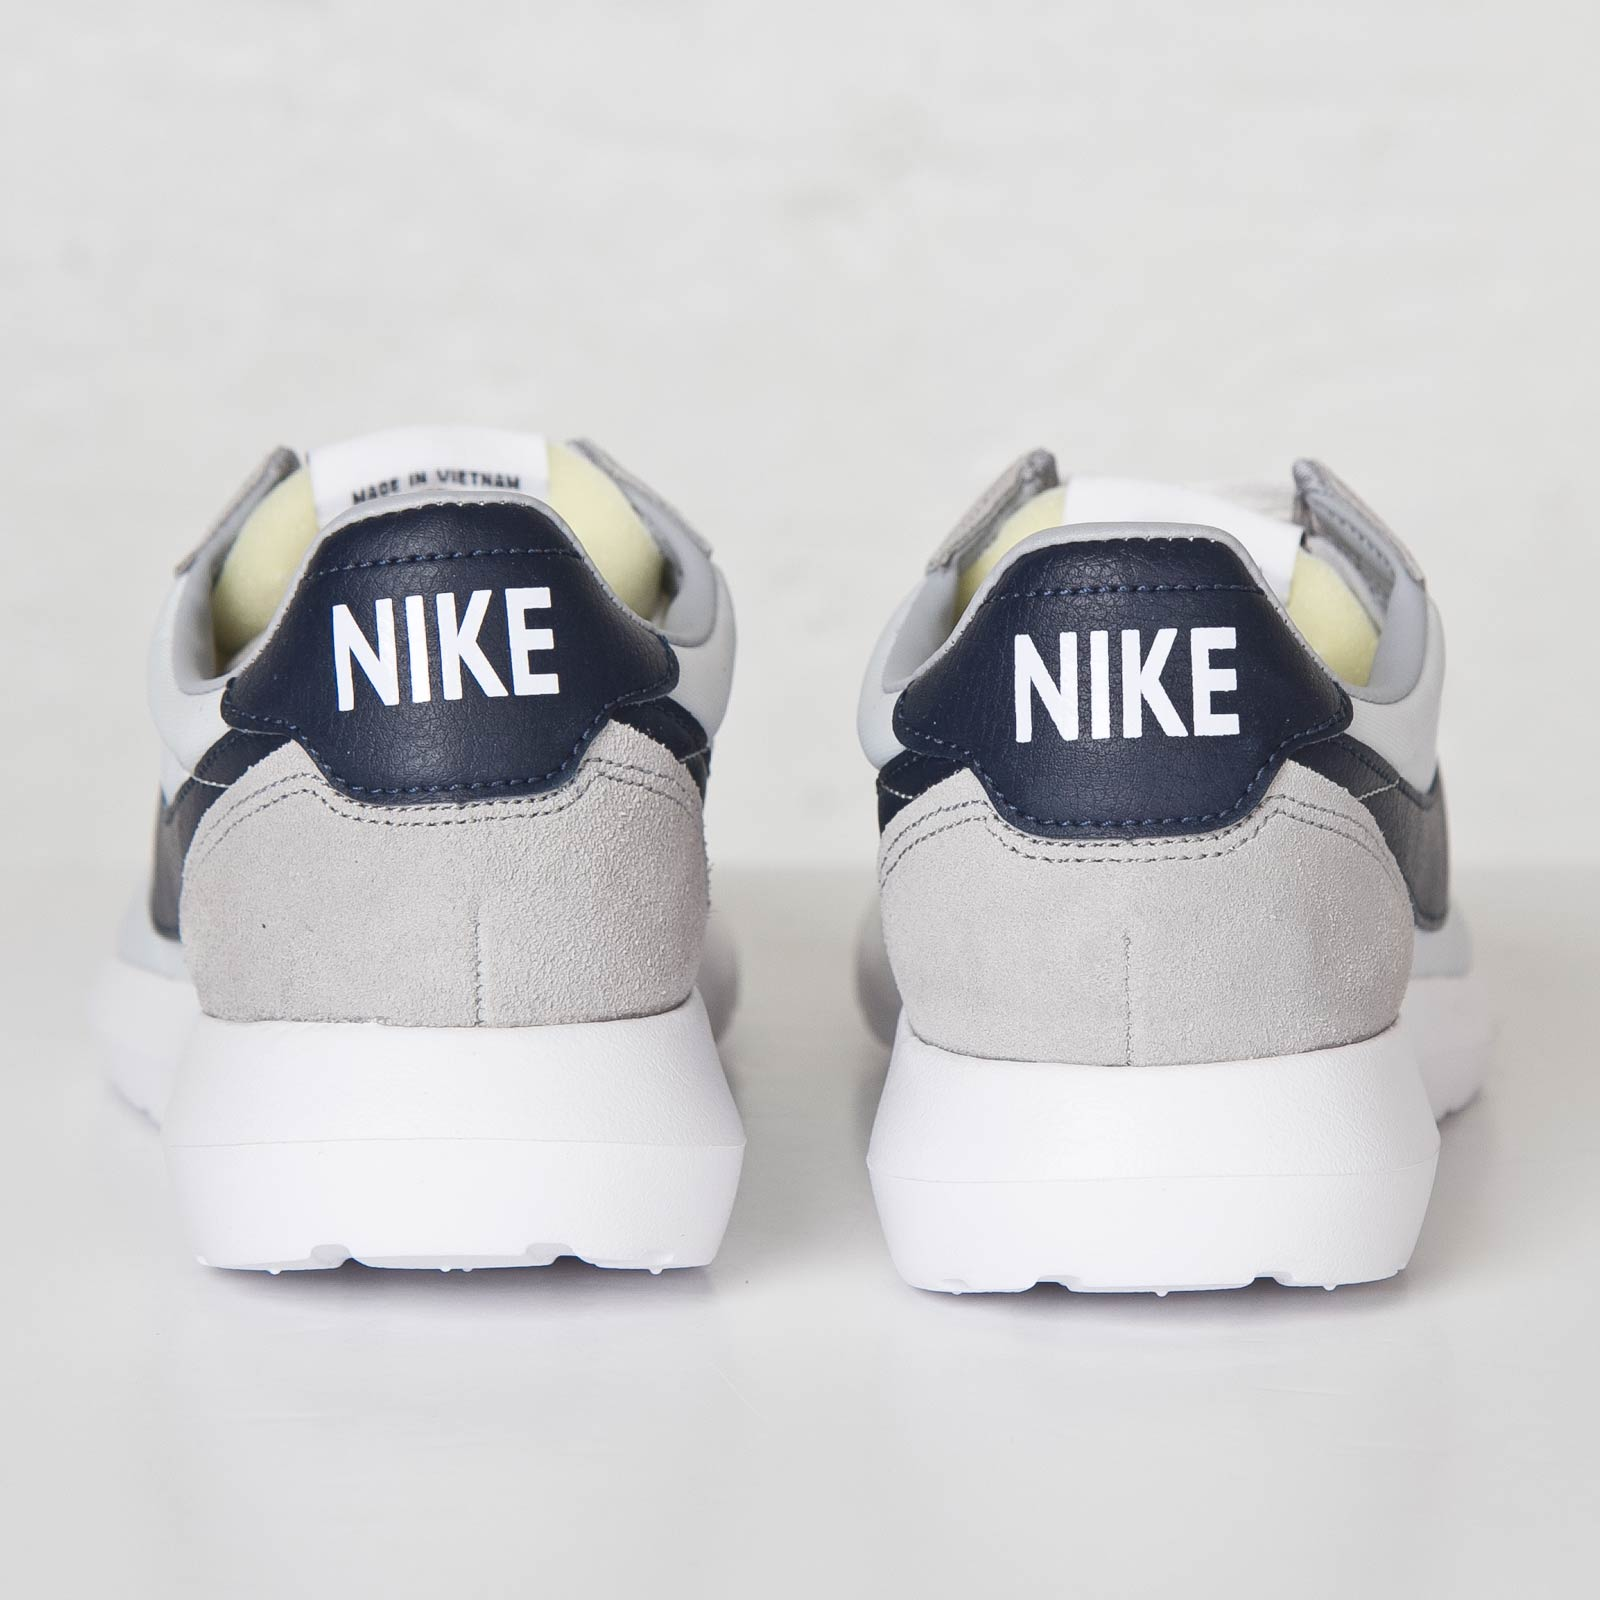 cheap for discount 984b9 7e82d Nike Roshe LD-1000 QS - 802022-002 - Sneakersnstuff   sneakers   streetwear  online since 1999